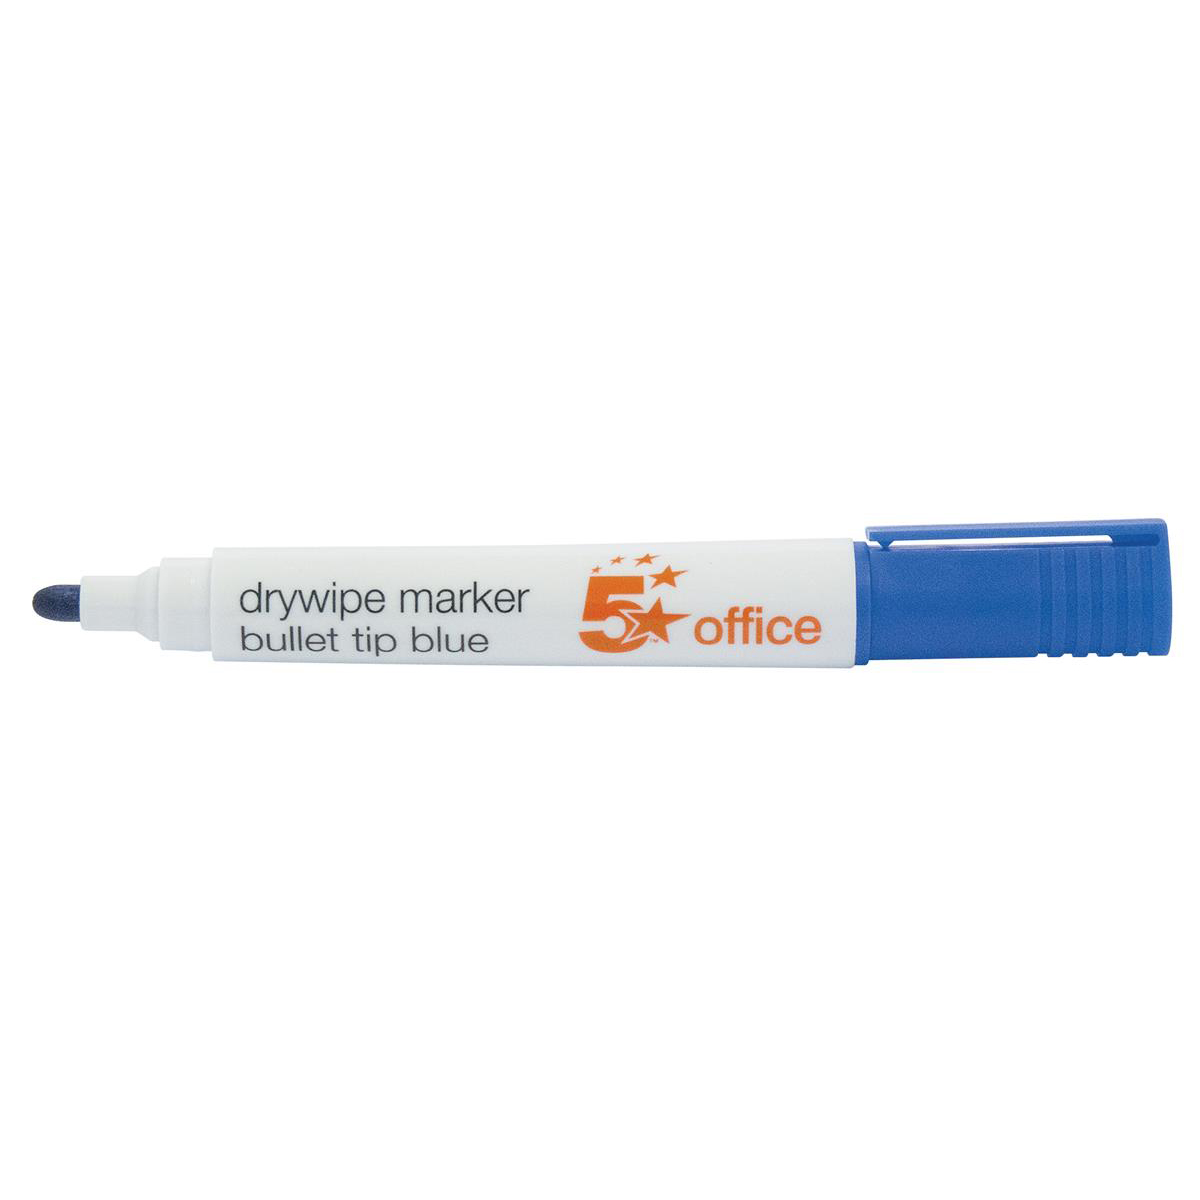 5 Star Office Drywipe Marker Xylene/Toluene-free Bullet Tip 2mm Line Blue Pack 12